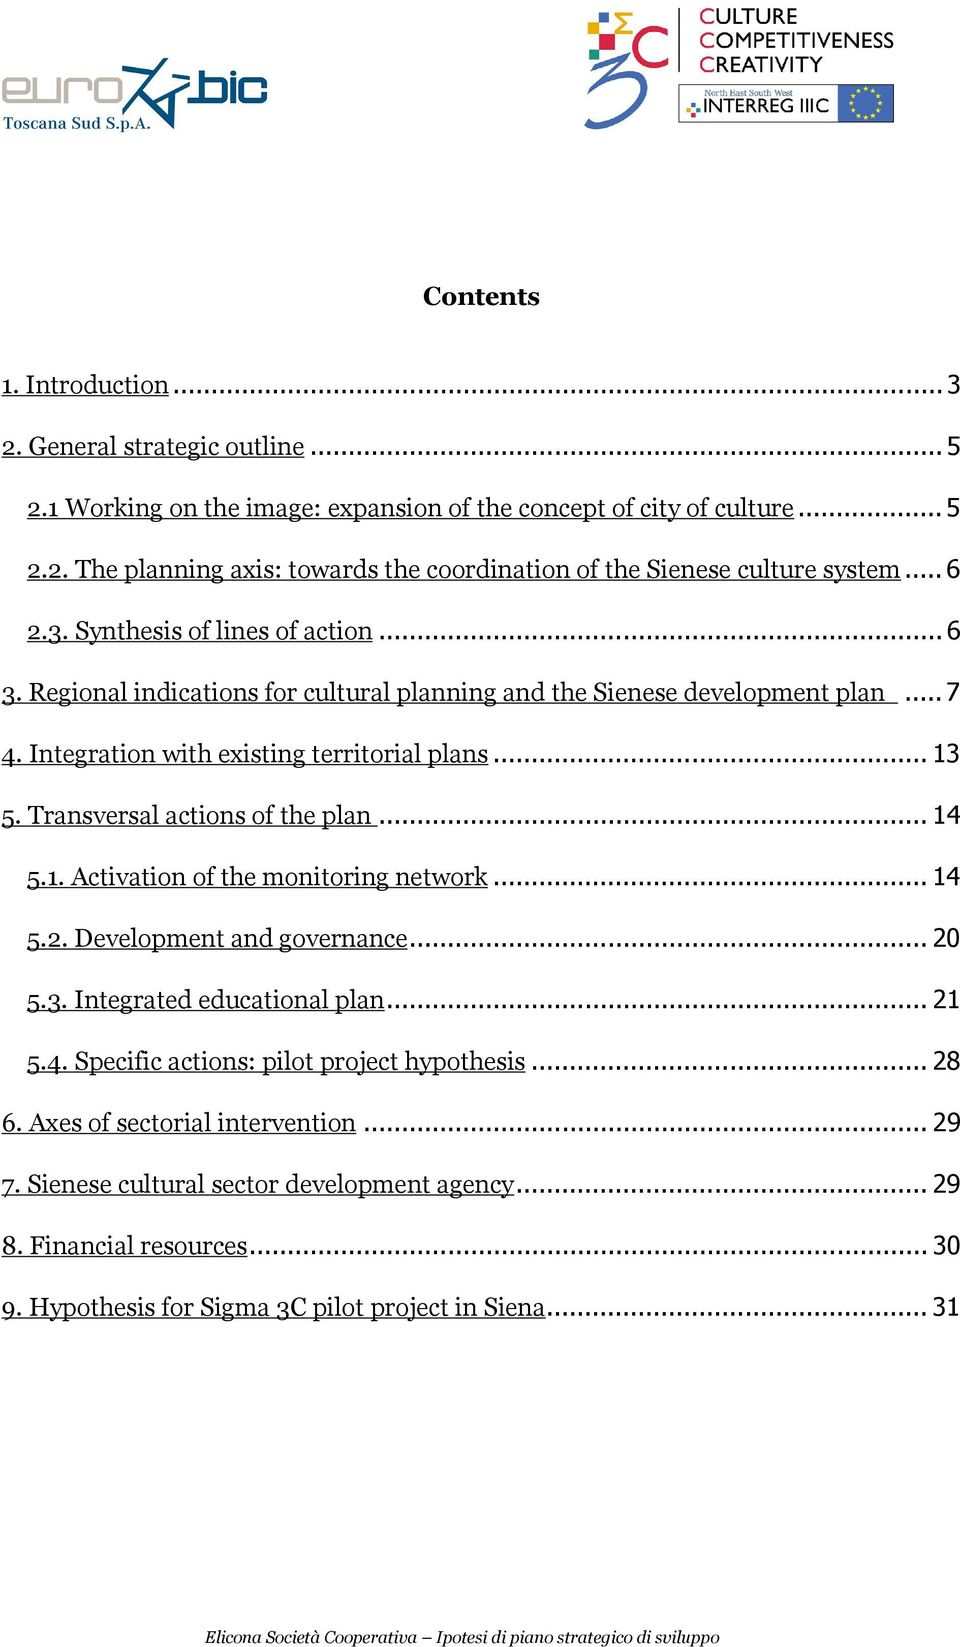 Transversal actions of the plan... 14 5.1. Activation of the monitoring network... 14 5.2. Development and governance... 20 5.3. Integrated educational plan... 21 5.4. Specific actions: pilot project hypothesis.